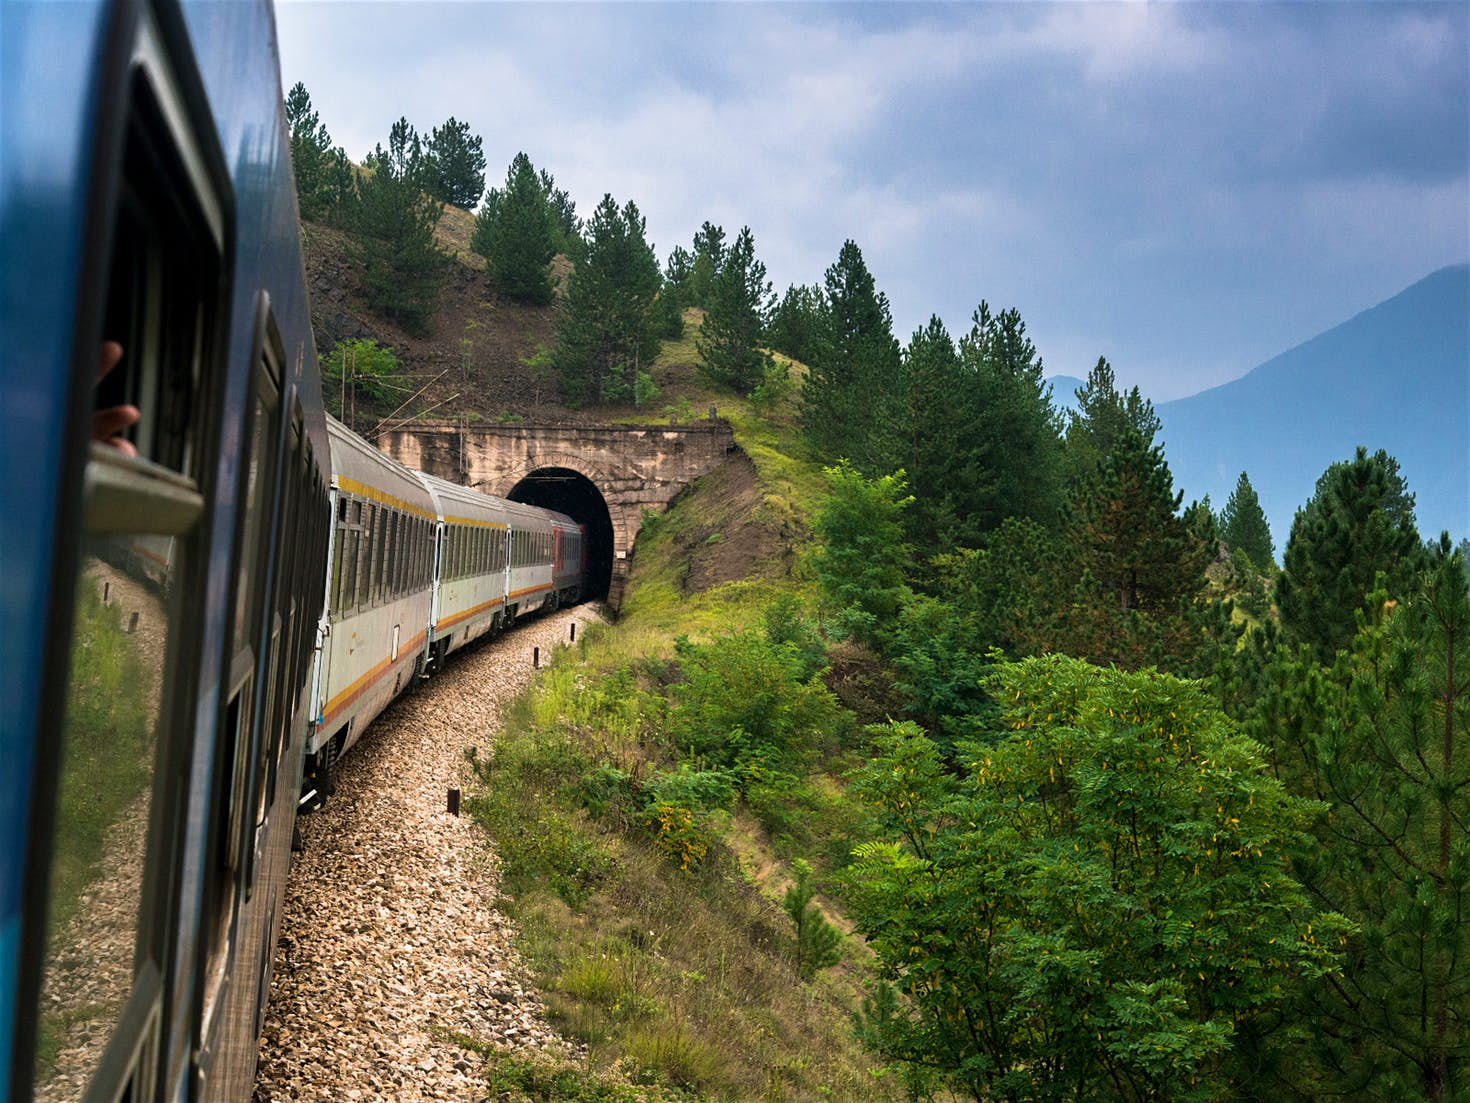 Belgrade–Bar train entering one of the numerous tunnels that dot the route © Pe3k / Shutterstock